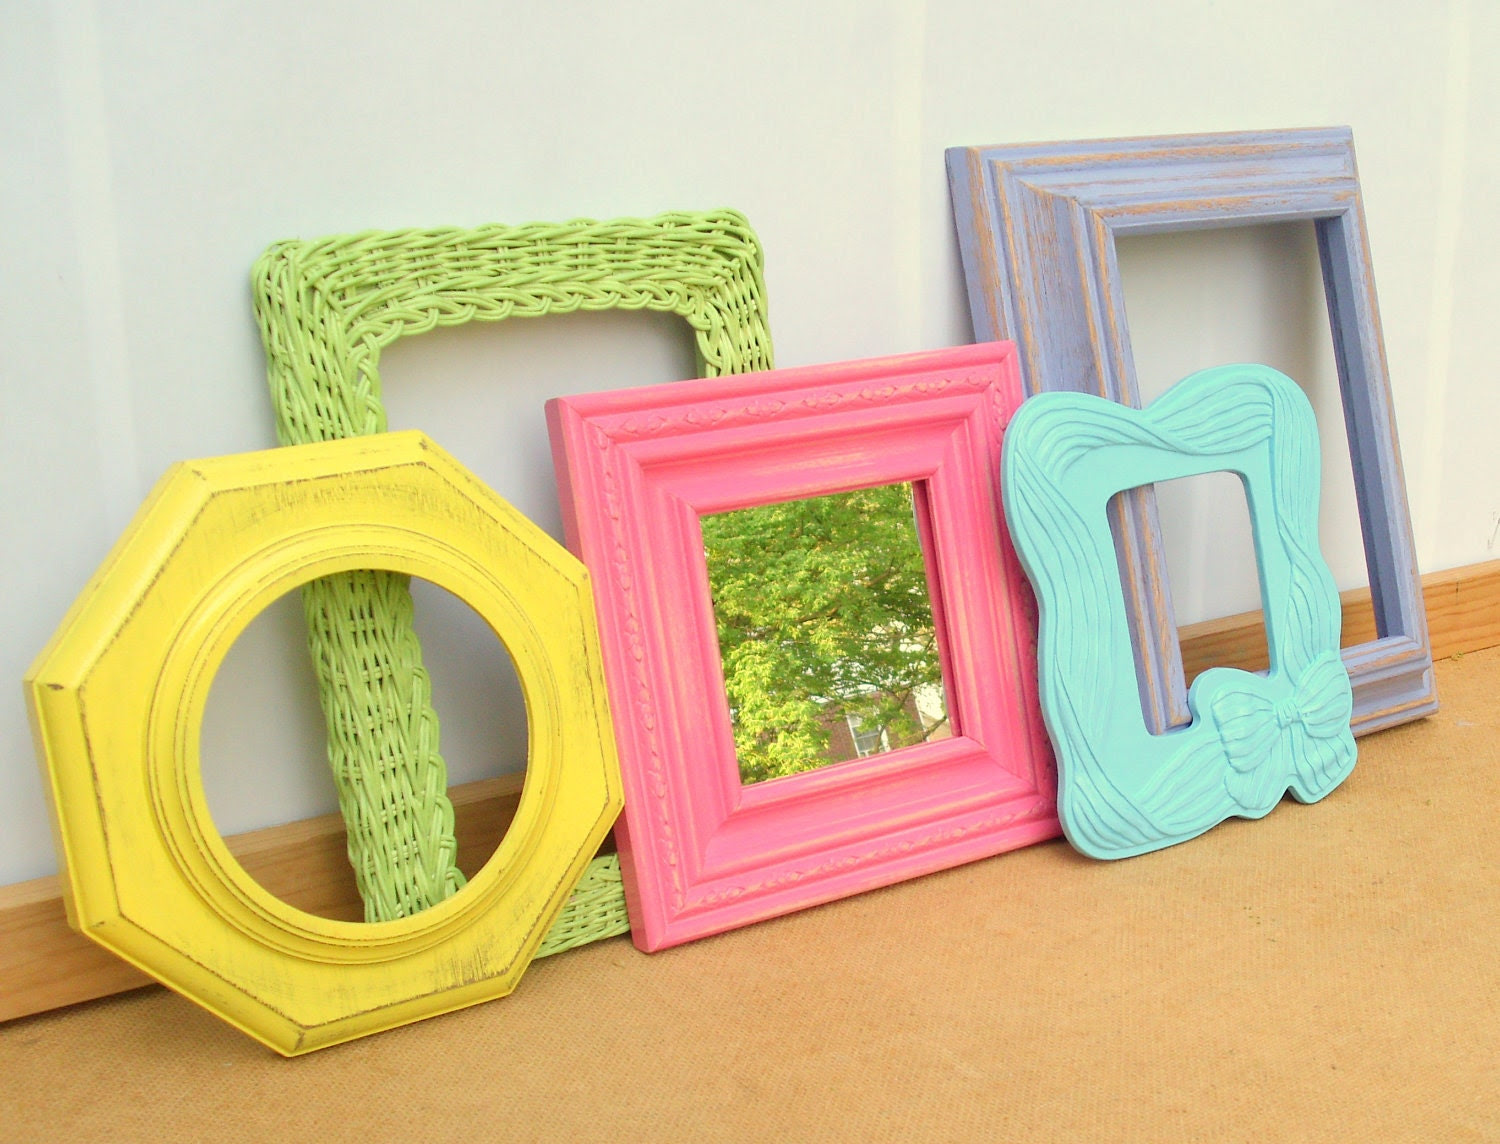 Candy Shop Frame Quintet  - 1 mirror, 4 frames- upcycled shabby cottage chic - painted apple green, yellow, aqua blue, bubblegum pink, lilac